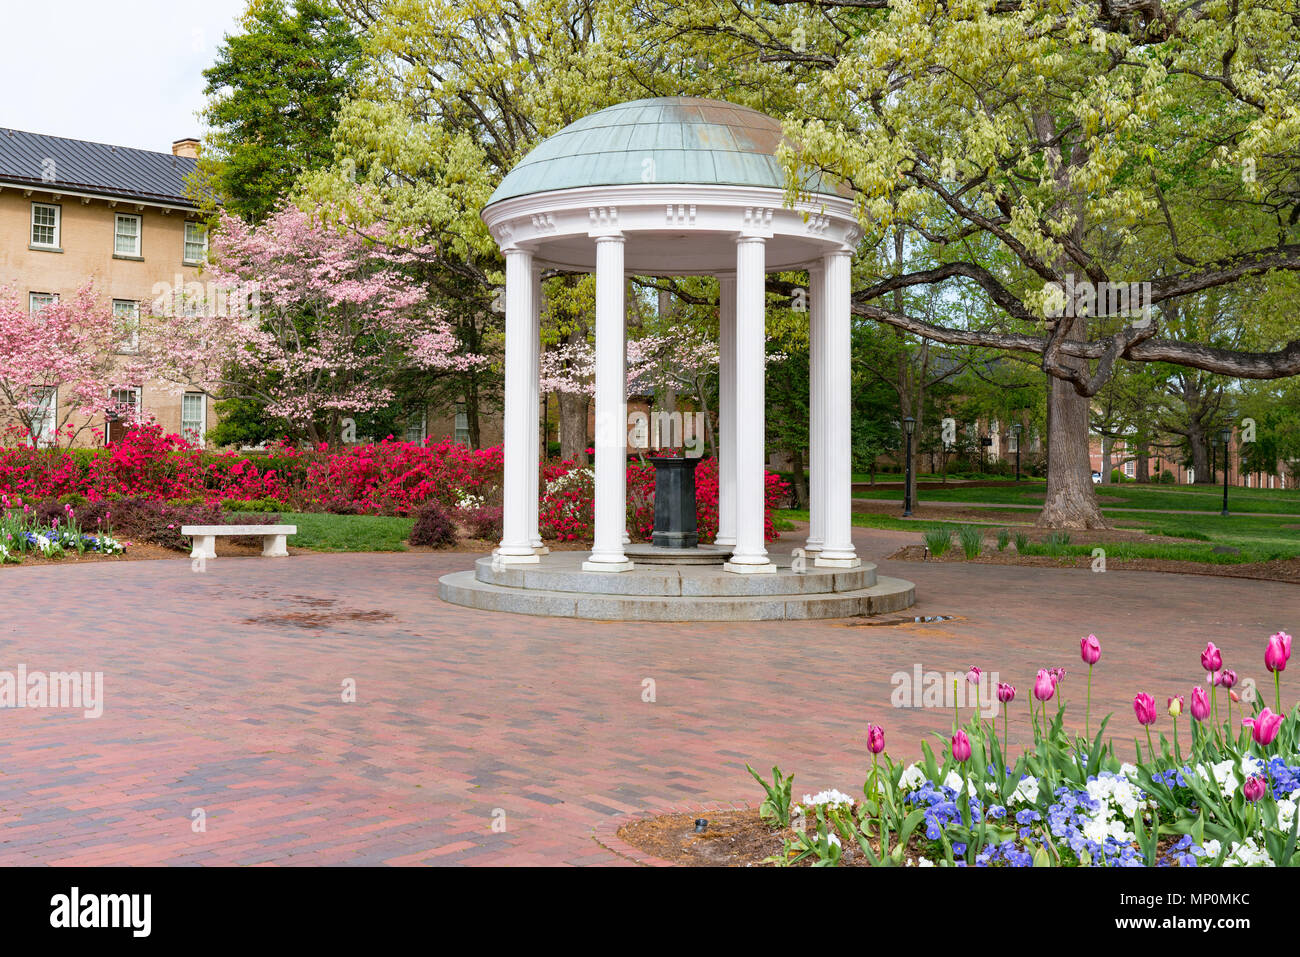 Flowers Bloom in Spring at the Old Well Rotunda at University of North Carolina in Chapel Hill Stock Photo